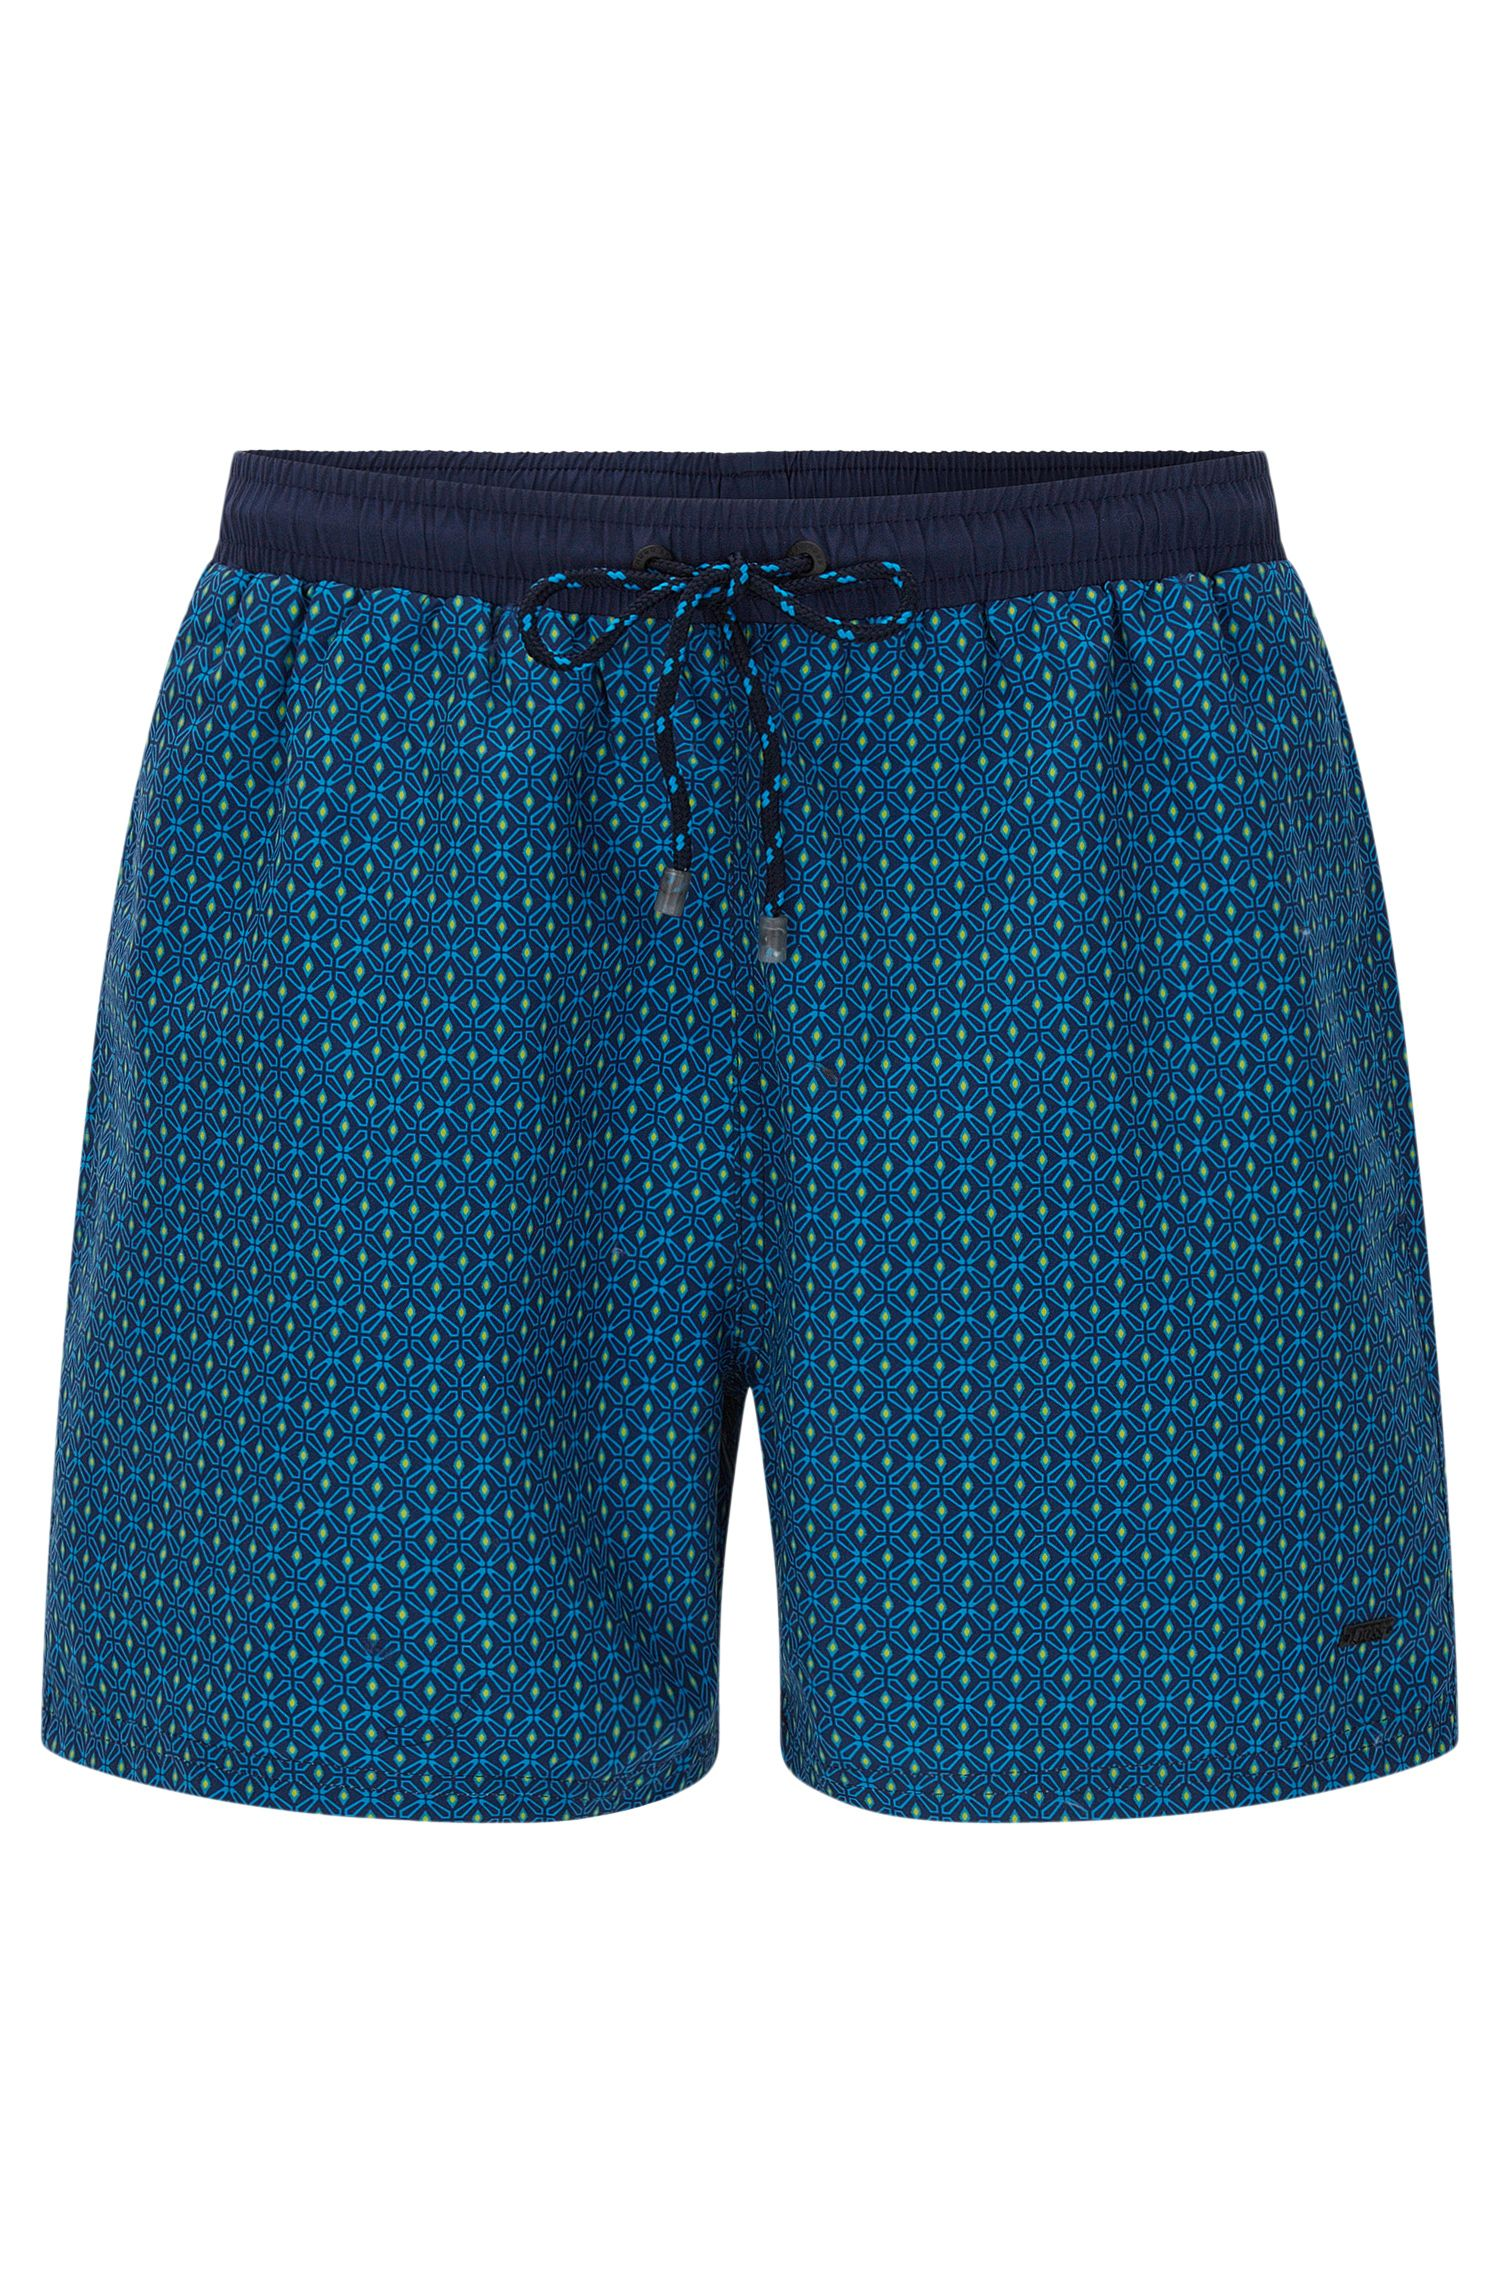 'Piranha' | Geometric Quick Dry Swim Trunks